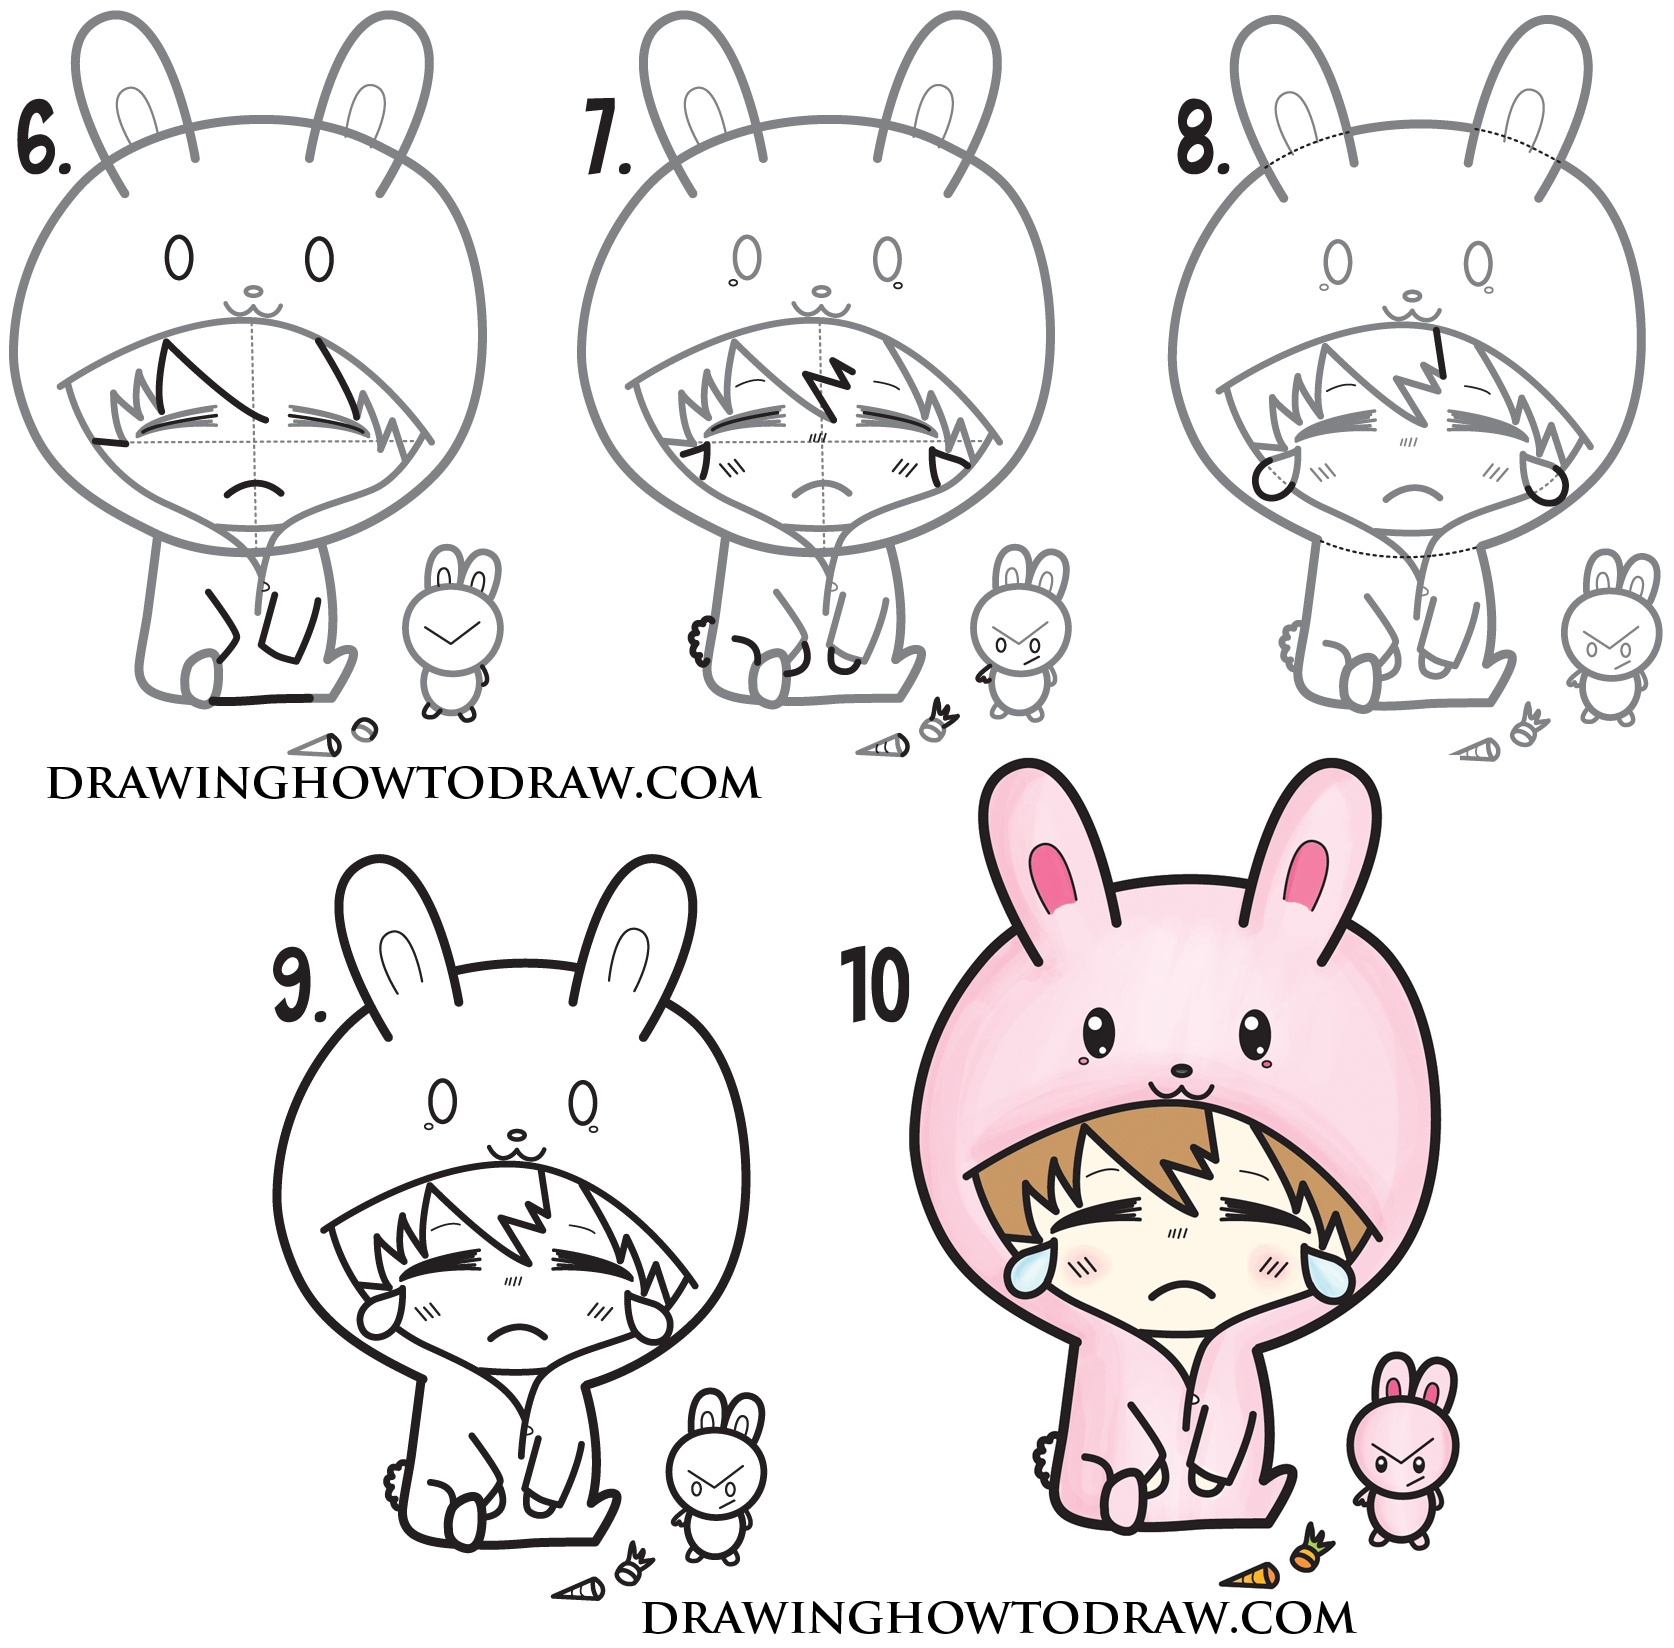 How to Draw a Cute Chibi Character in Bunny Rabbit Onesie Pajamas Costume Easy Steps Drawing for Kids